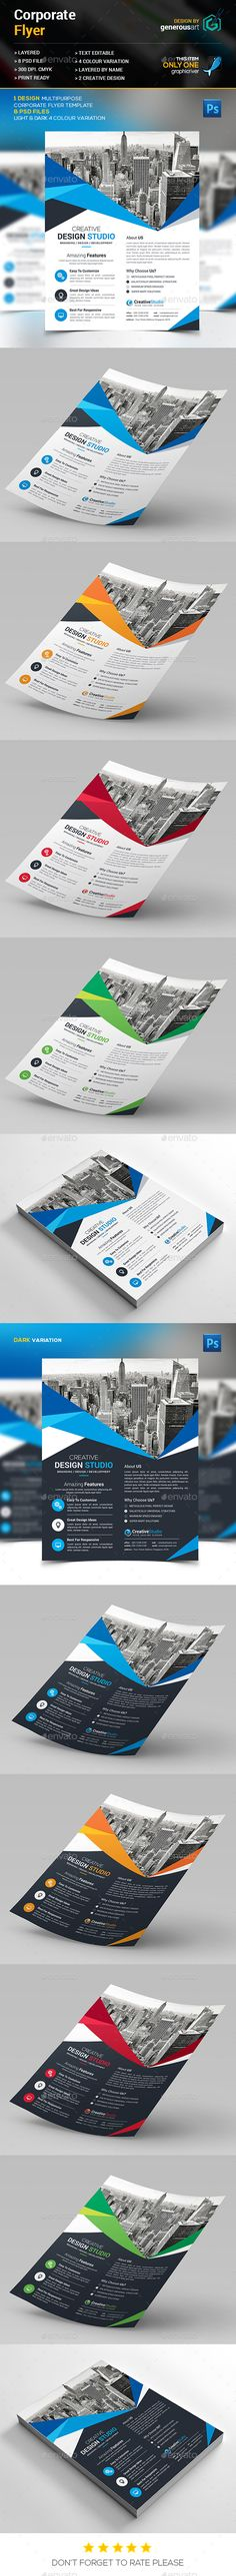 After School Program Flyer Templates School programs, Flyer - architecture brochure template